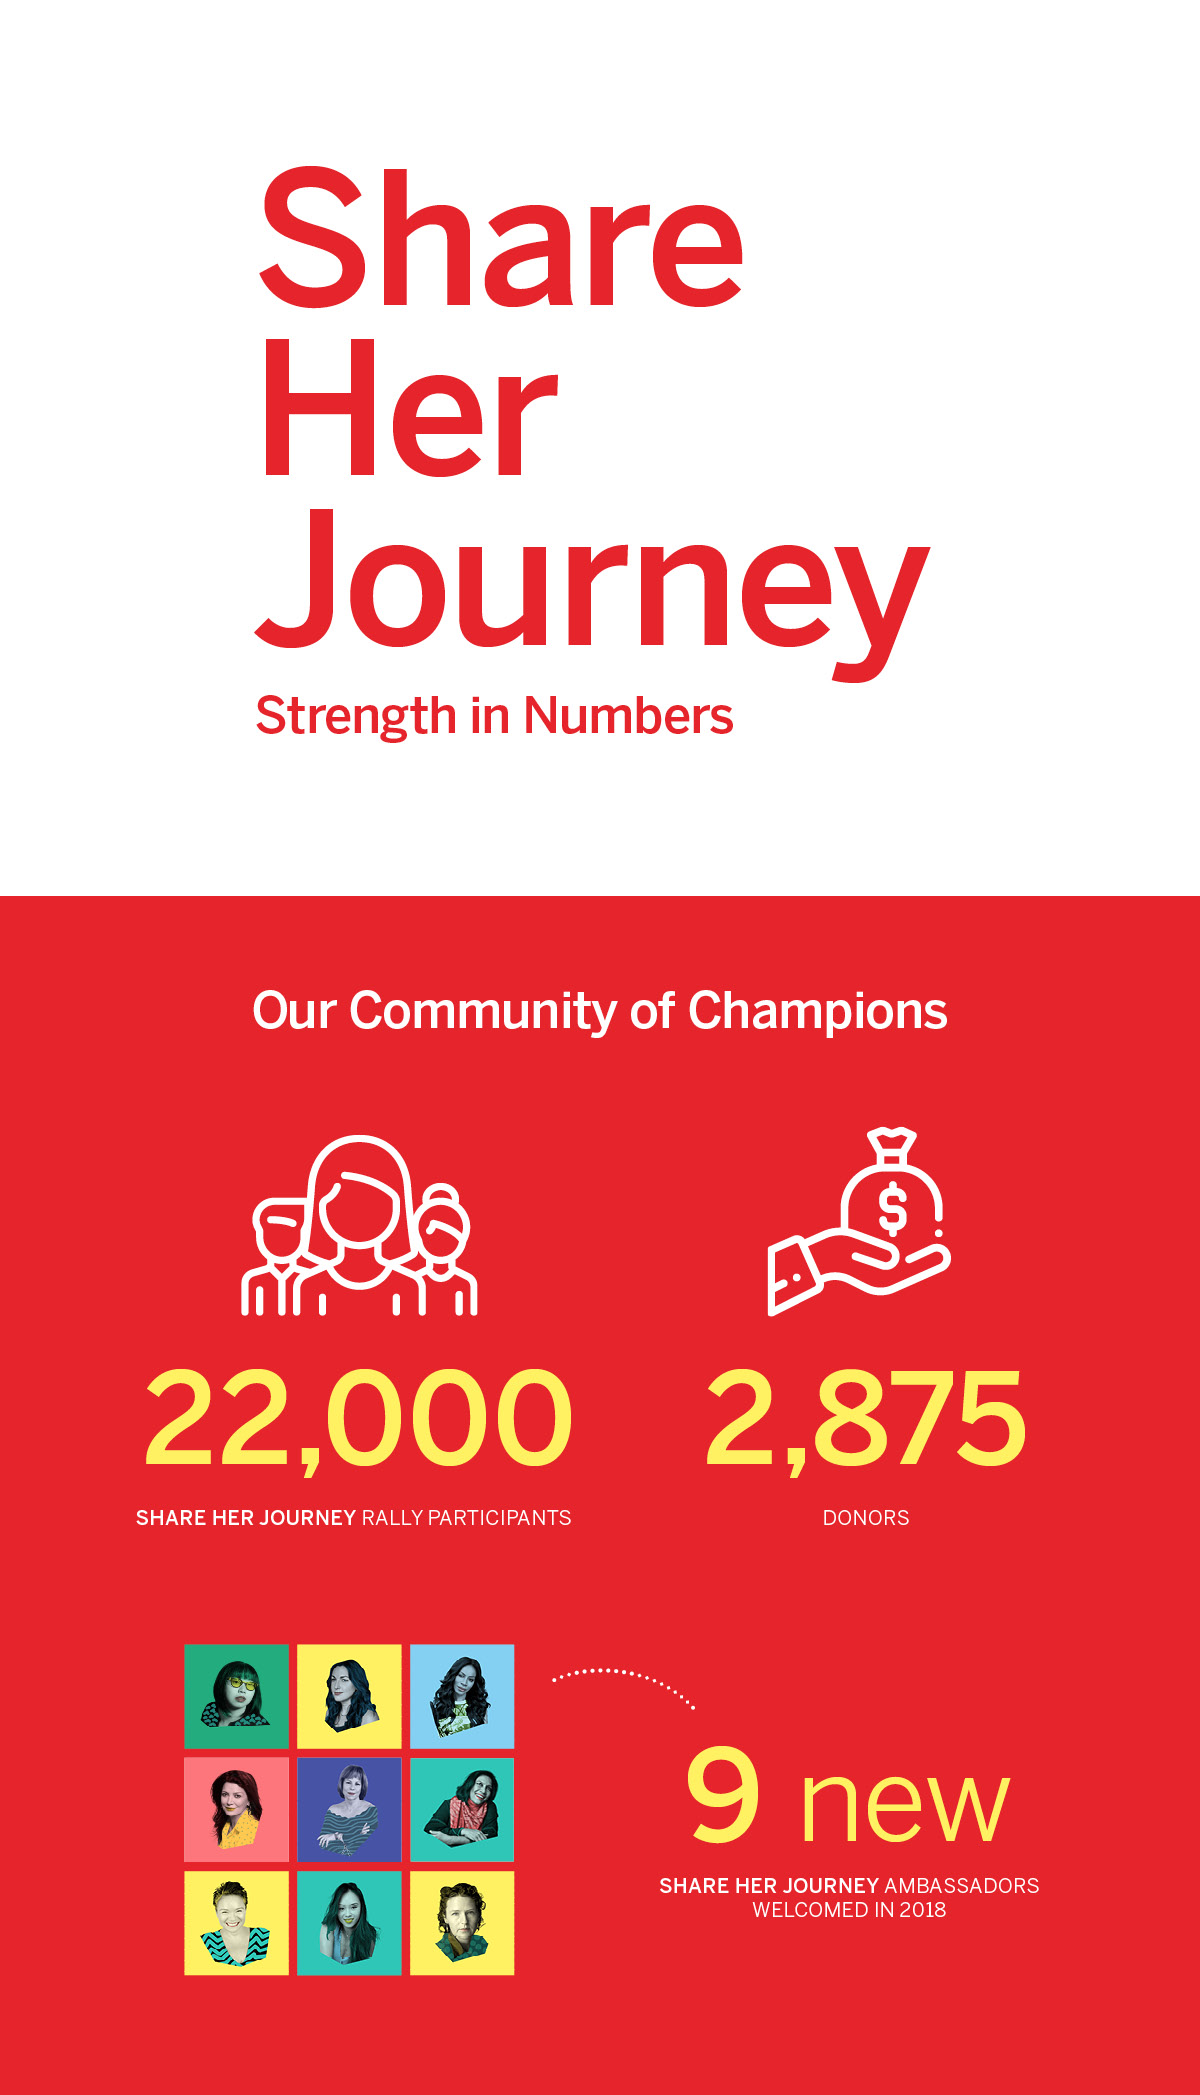 Share Her Journey infographic